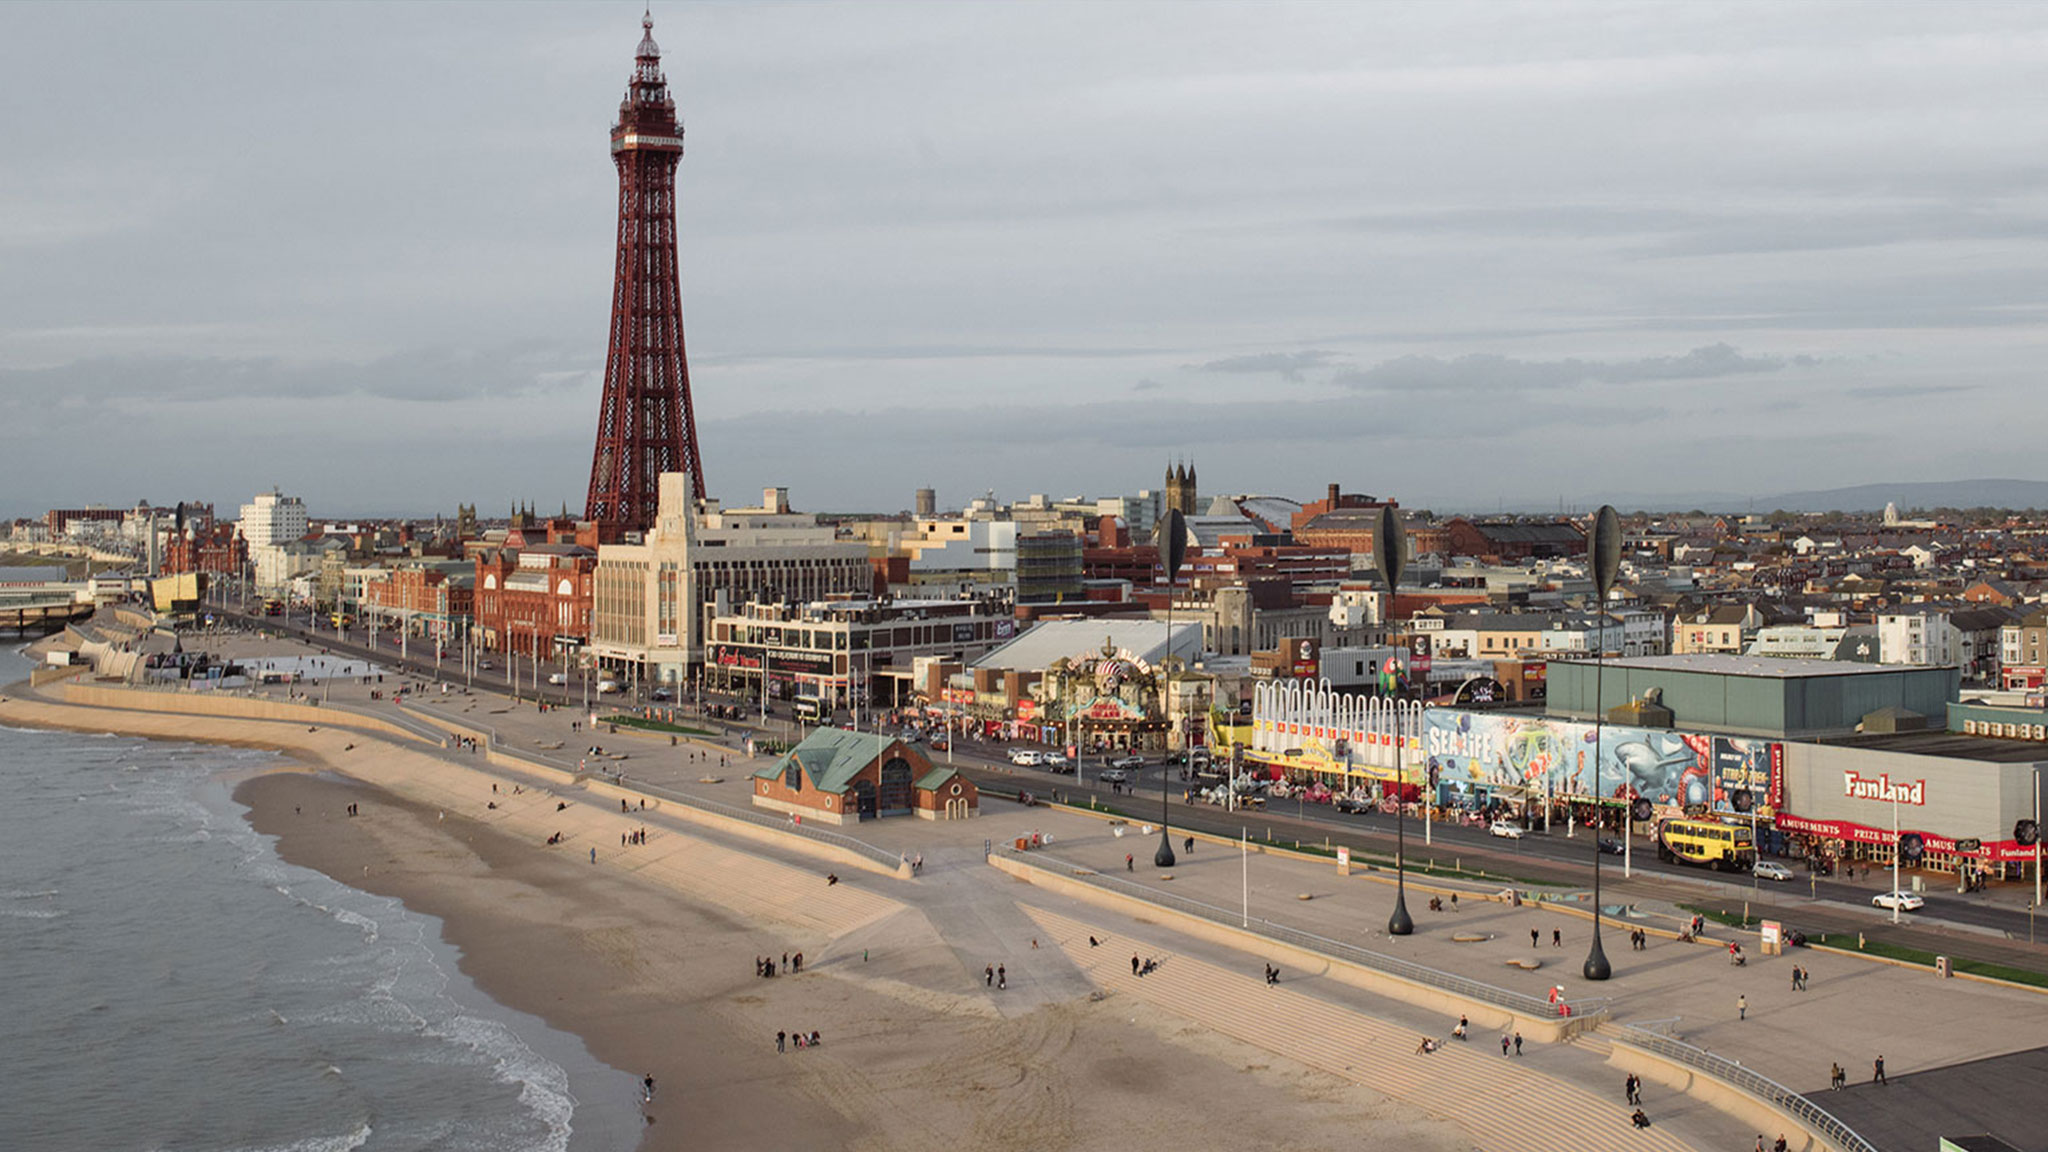 Blackpool: a forgotten town